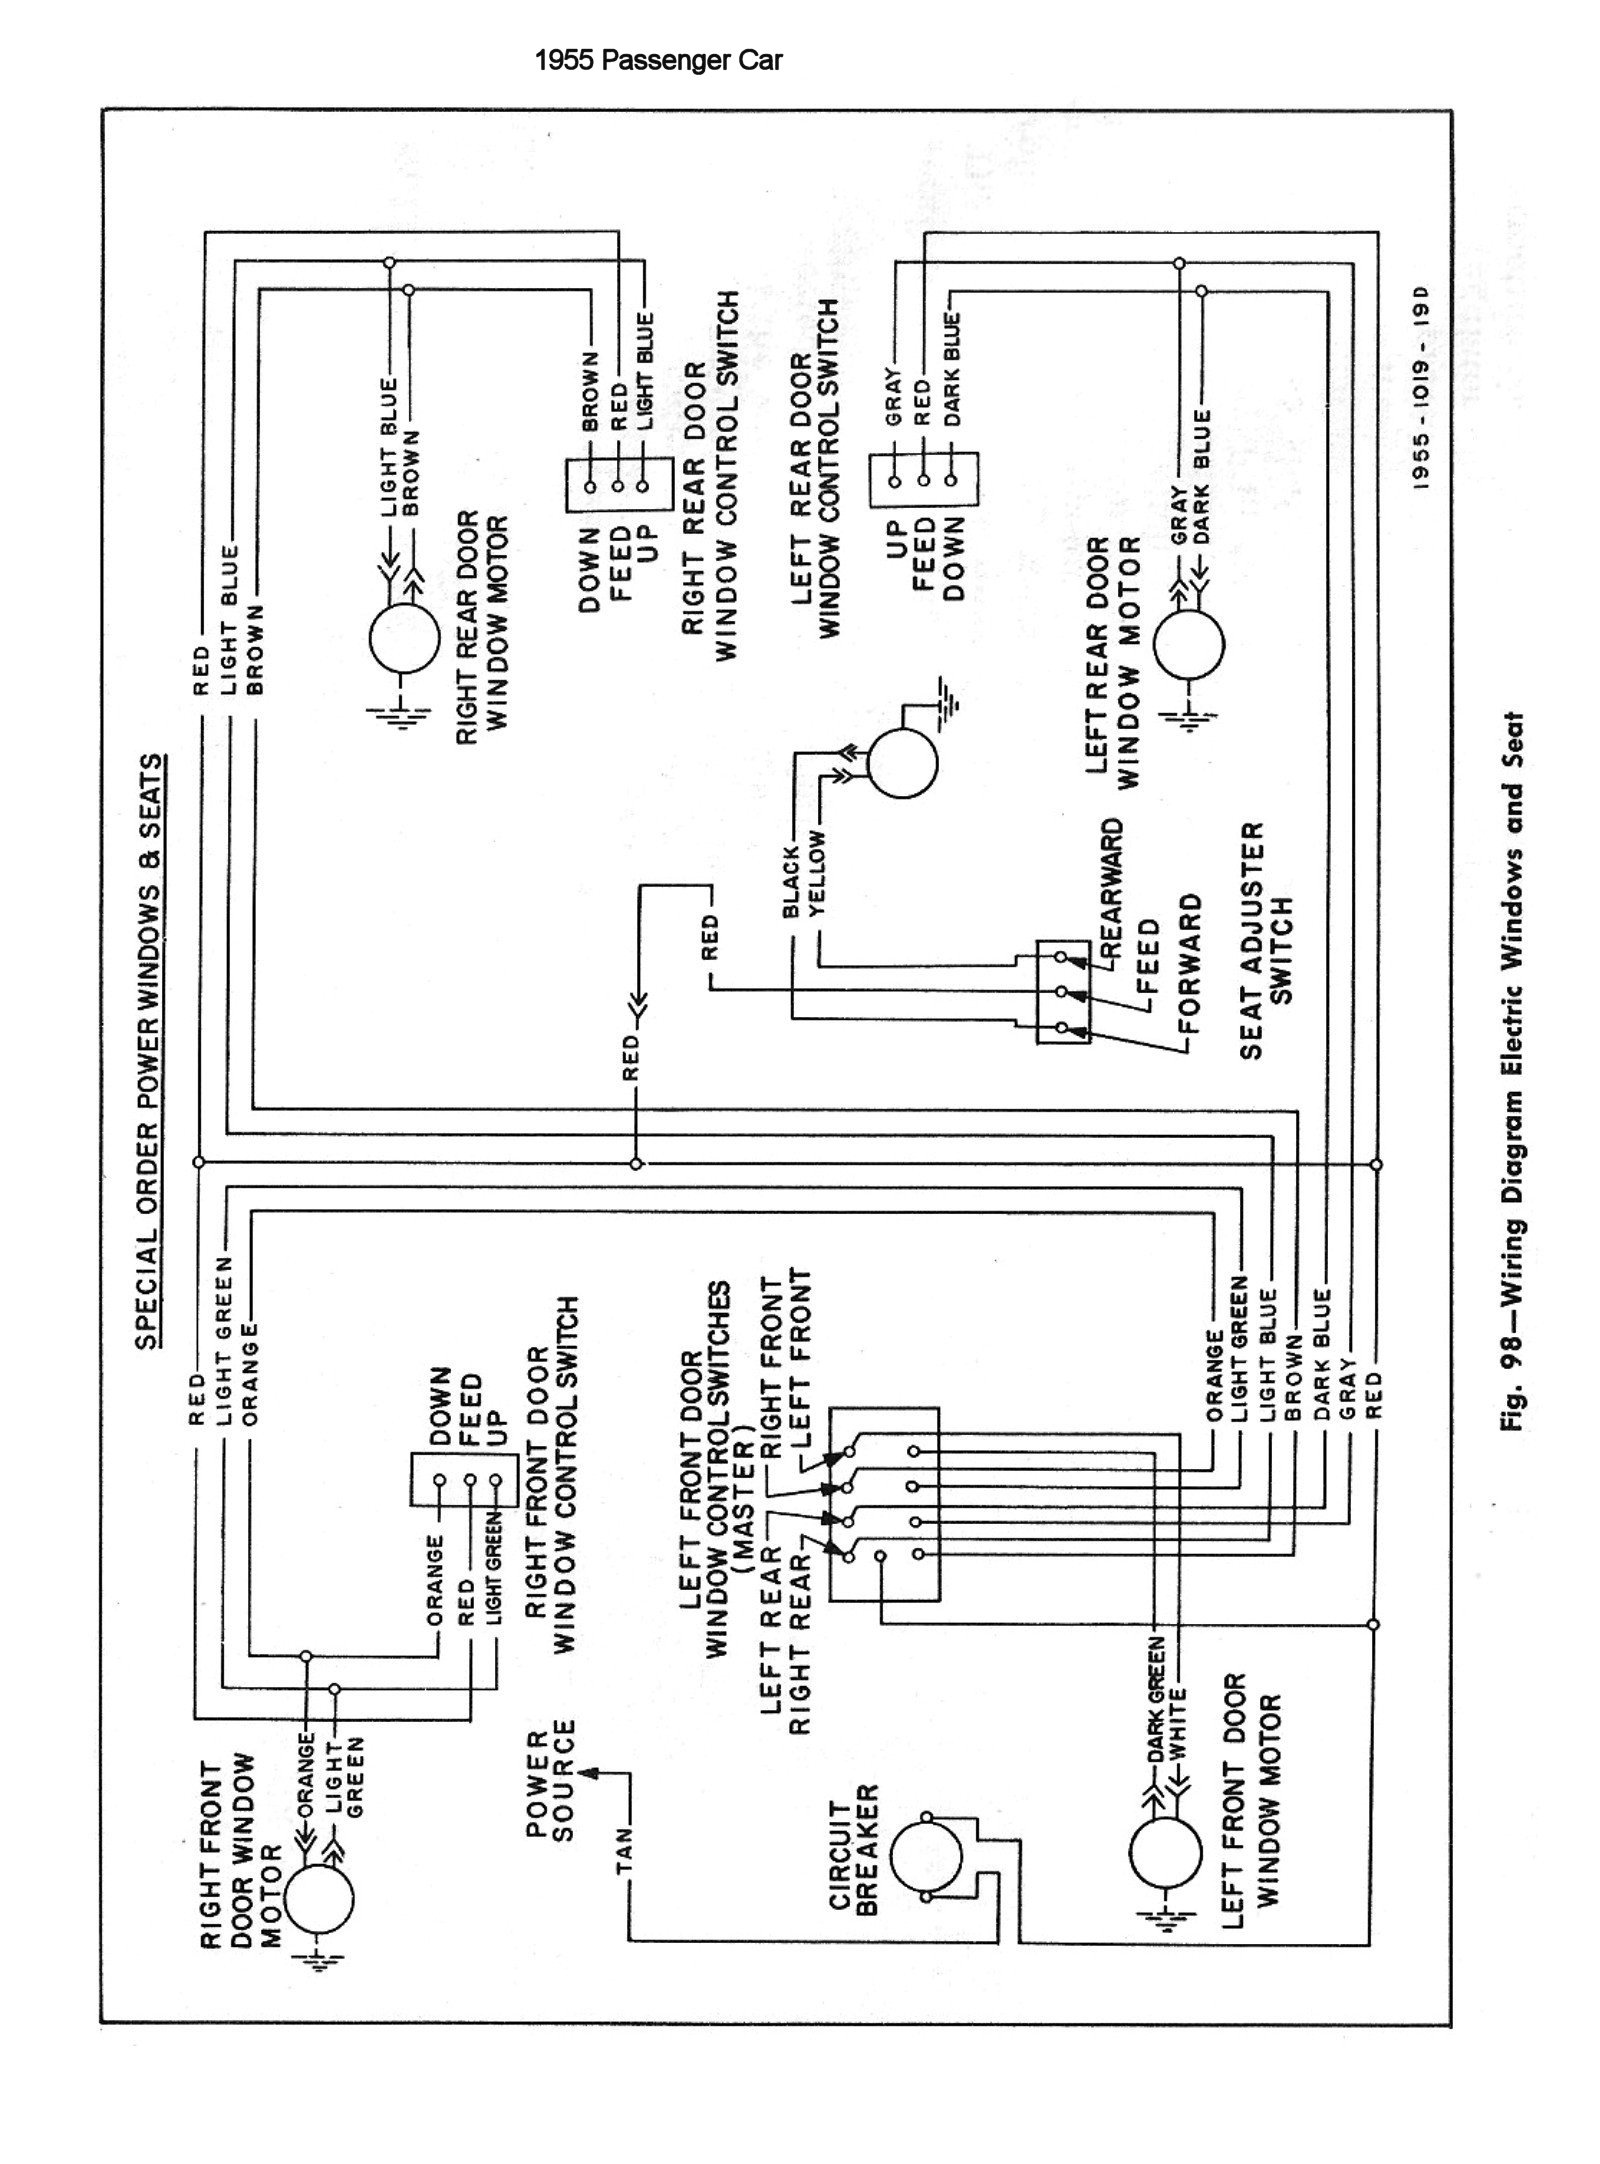 Chevy Wiring diagrams on 2005 chevy express wiring-diagram, kenwood dpx300u wiring-diagram, 47 international trucks wiring-diagram, 1986 chevrolet silverado wiring diagram, 1986 chevrolet silverado specs, 86 chevrolet caprice wiring-diagram, chevy 350 tbi wiring-diagram, 1987 chevy c30 wiring-diagram, 1985 chevy k10 wiring-diagram,